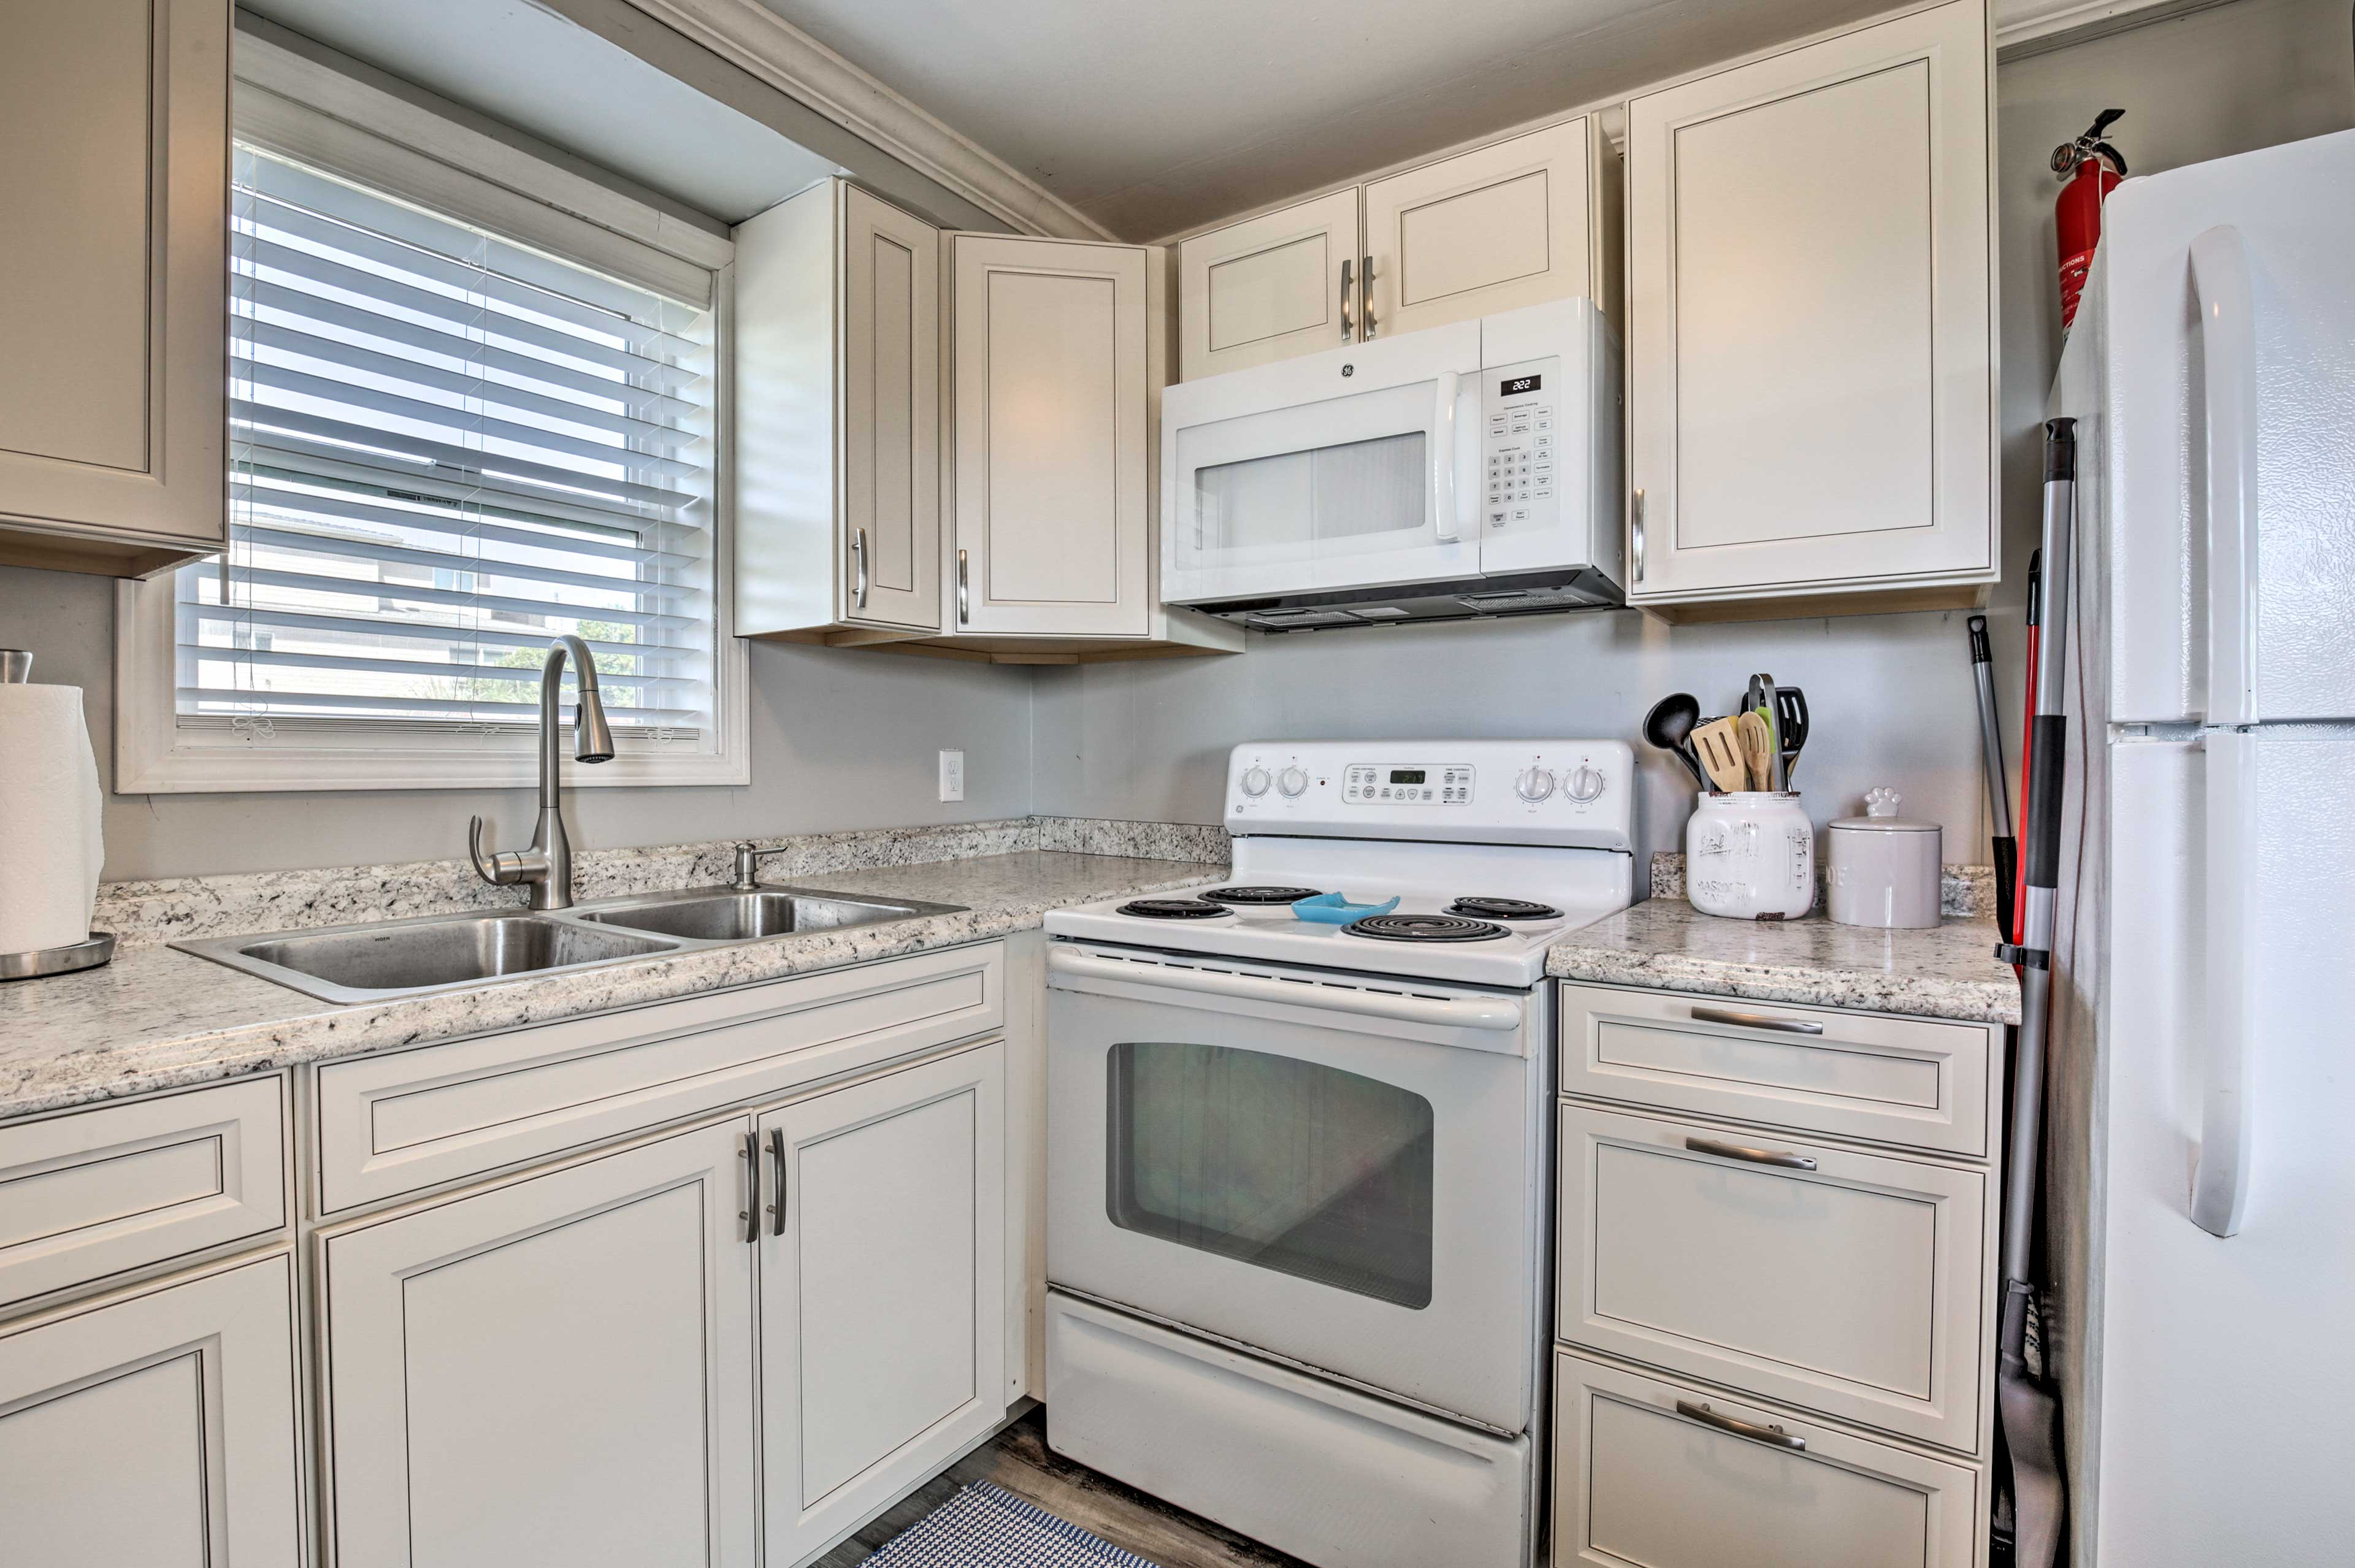 The well-equipped cooking space features wraparound counters for prep!